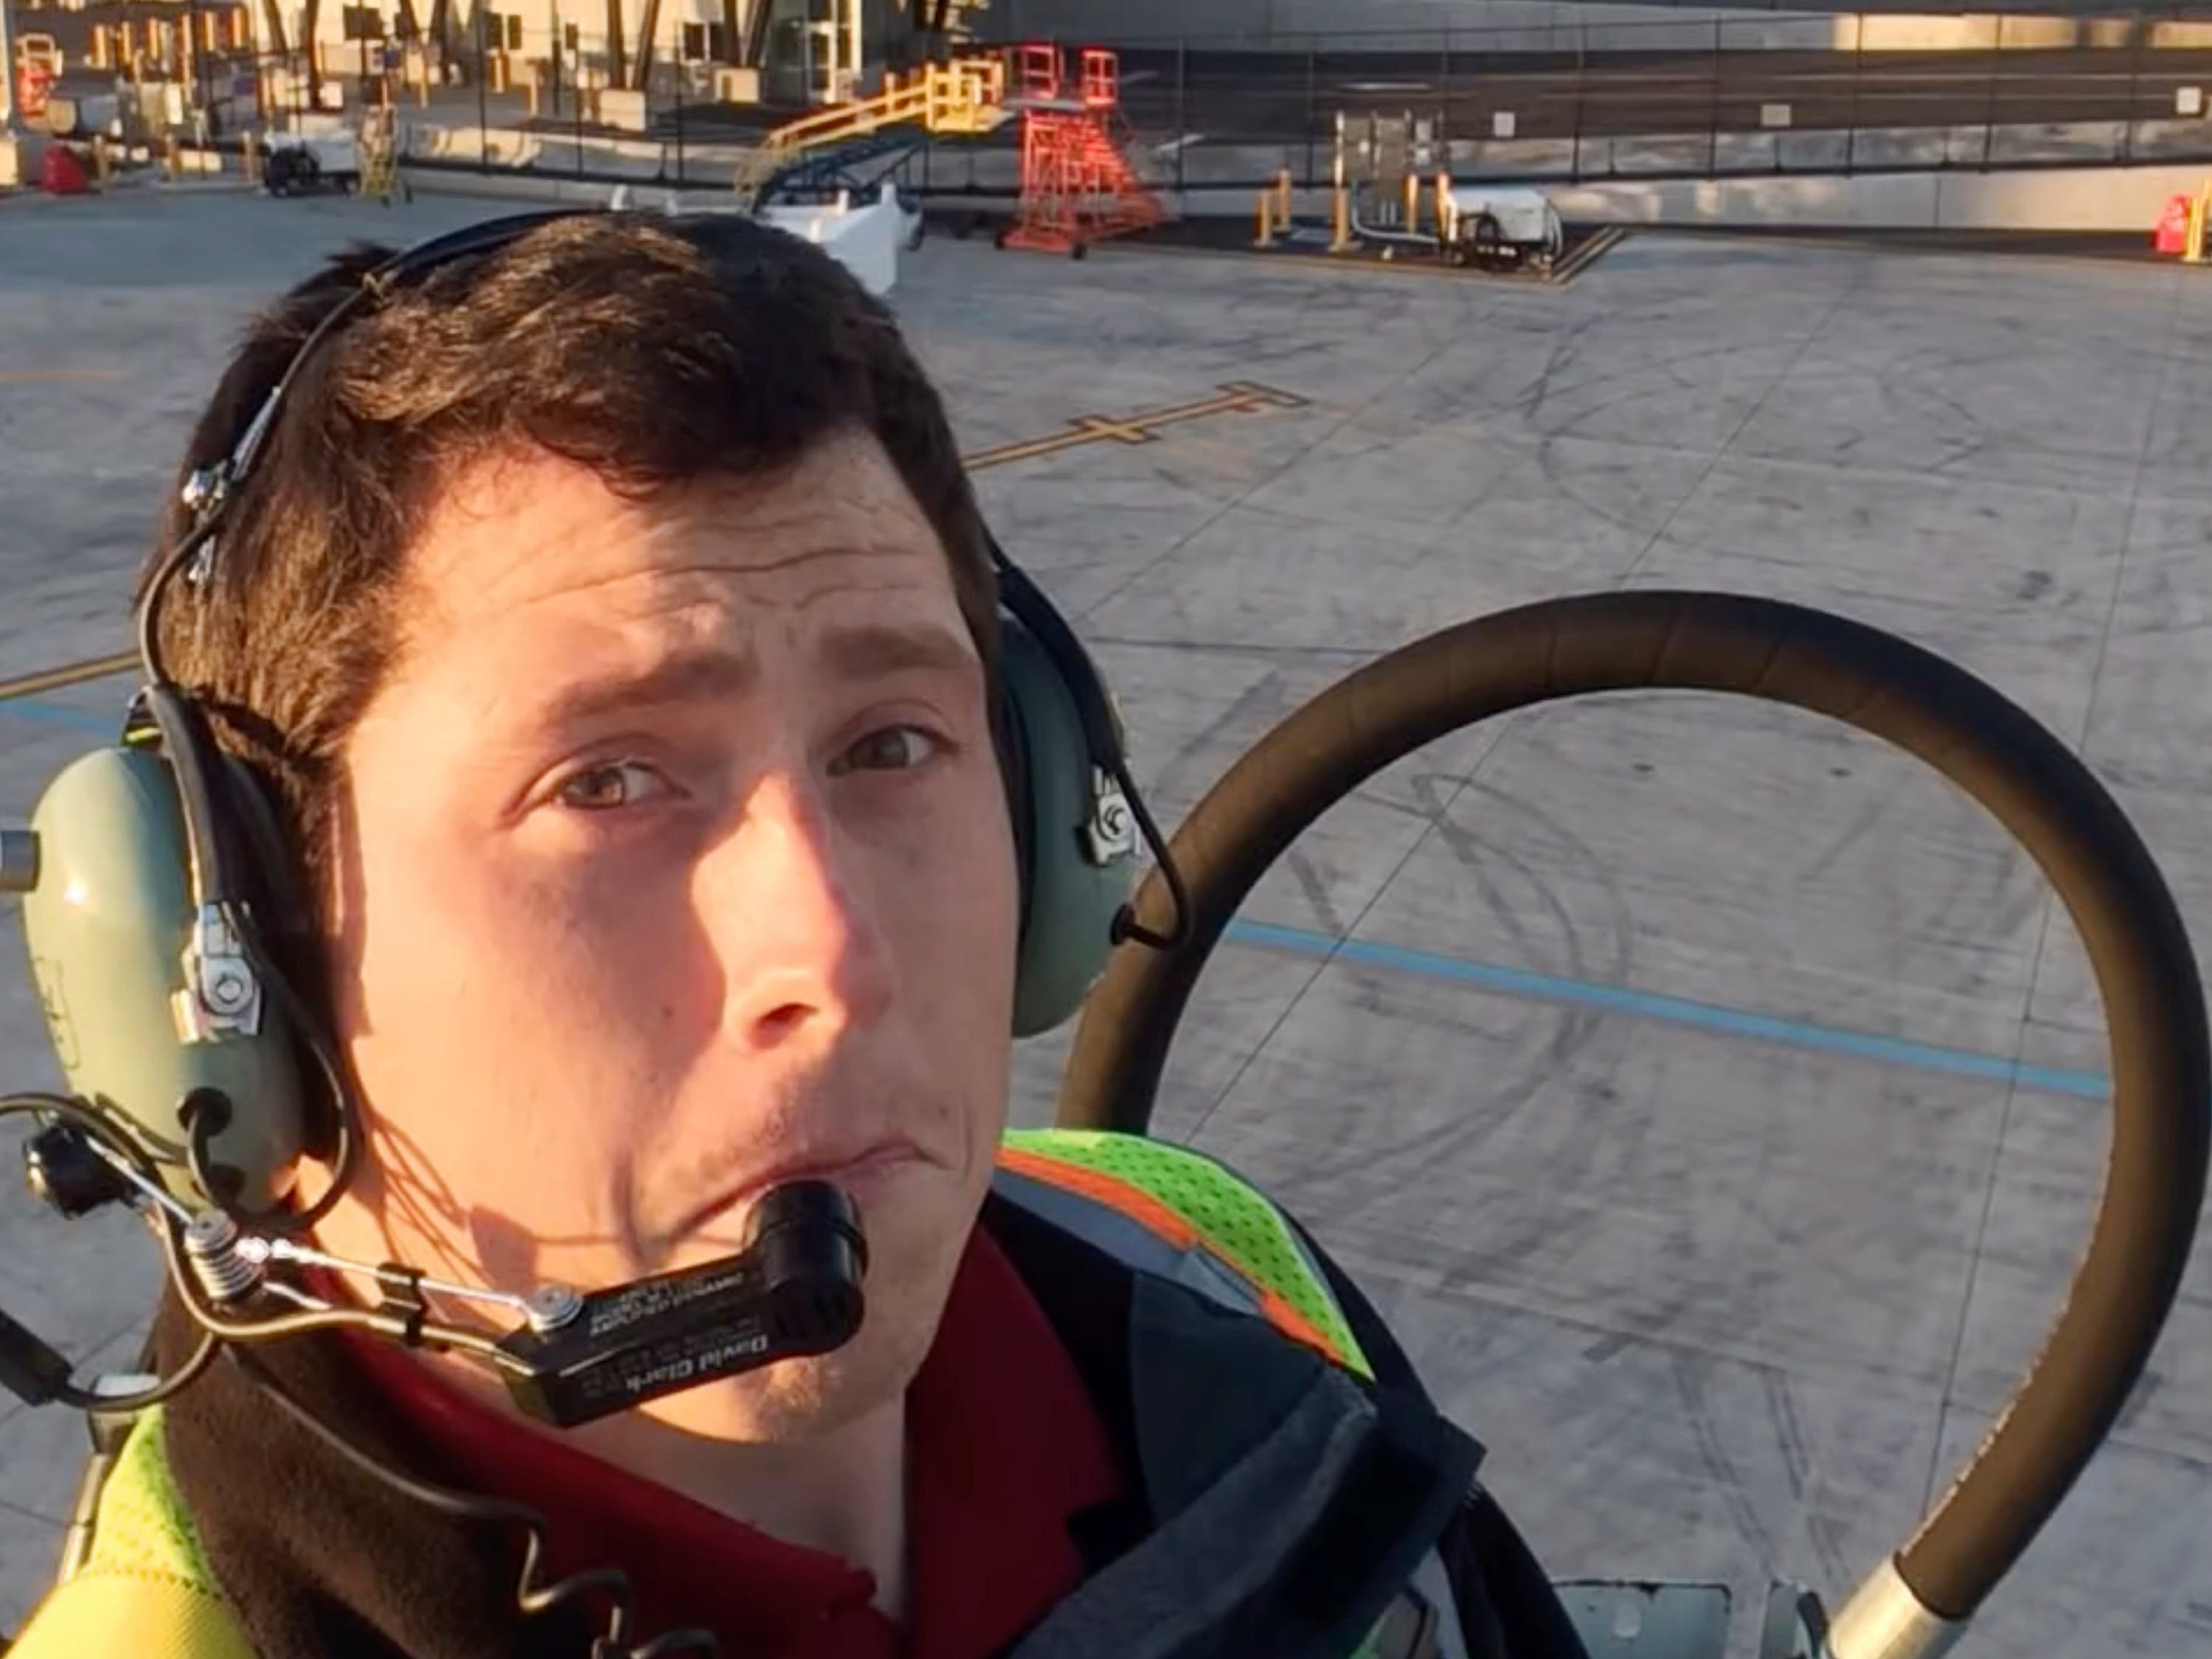 This undated image posted to Richard Russell's YouTube channel shows Russell, an airline ground agent. Investigators are piecing together how Russell stole an empty commercial airplane, took off from Sea-Tac International Airport in Seattle, and crashed into a small island in the Puget Sound in Washington.